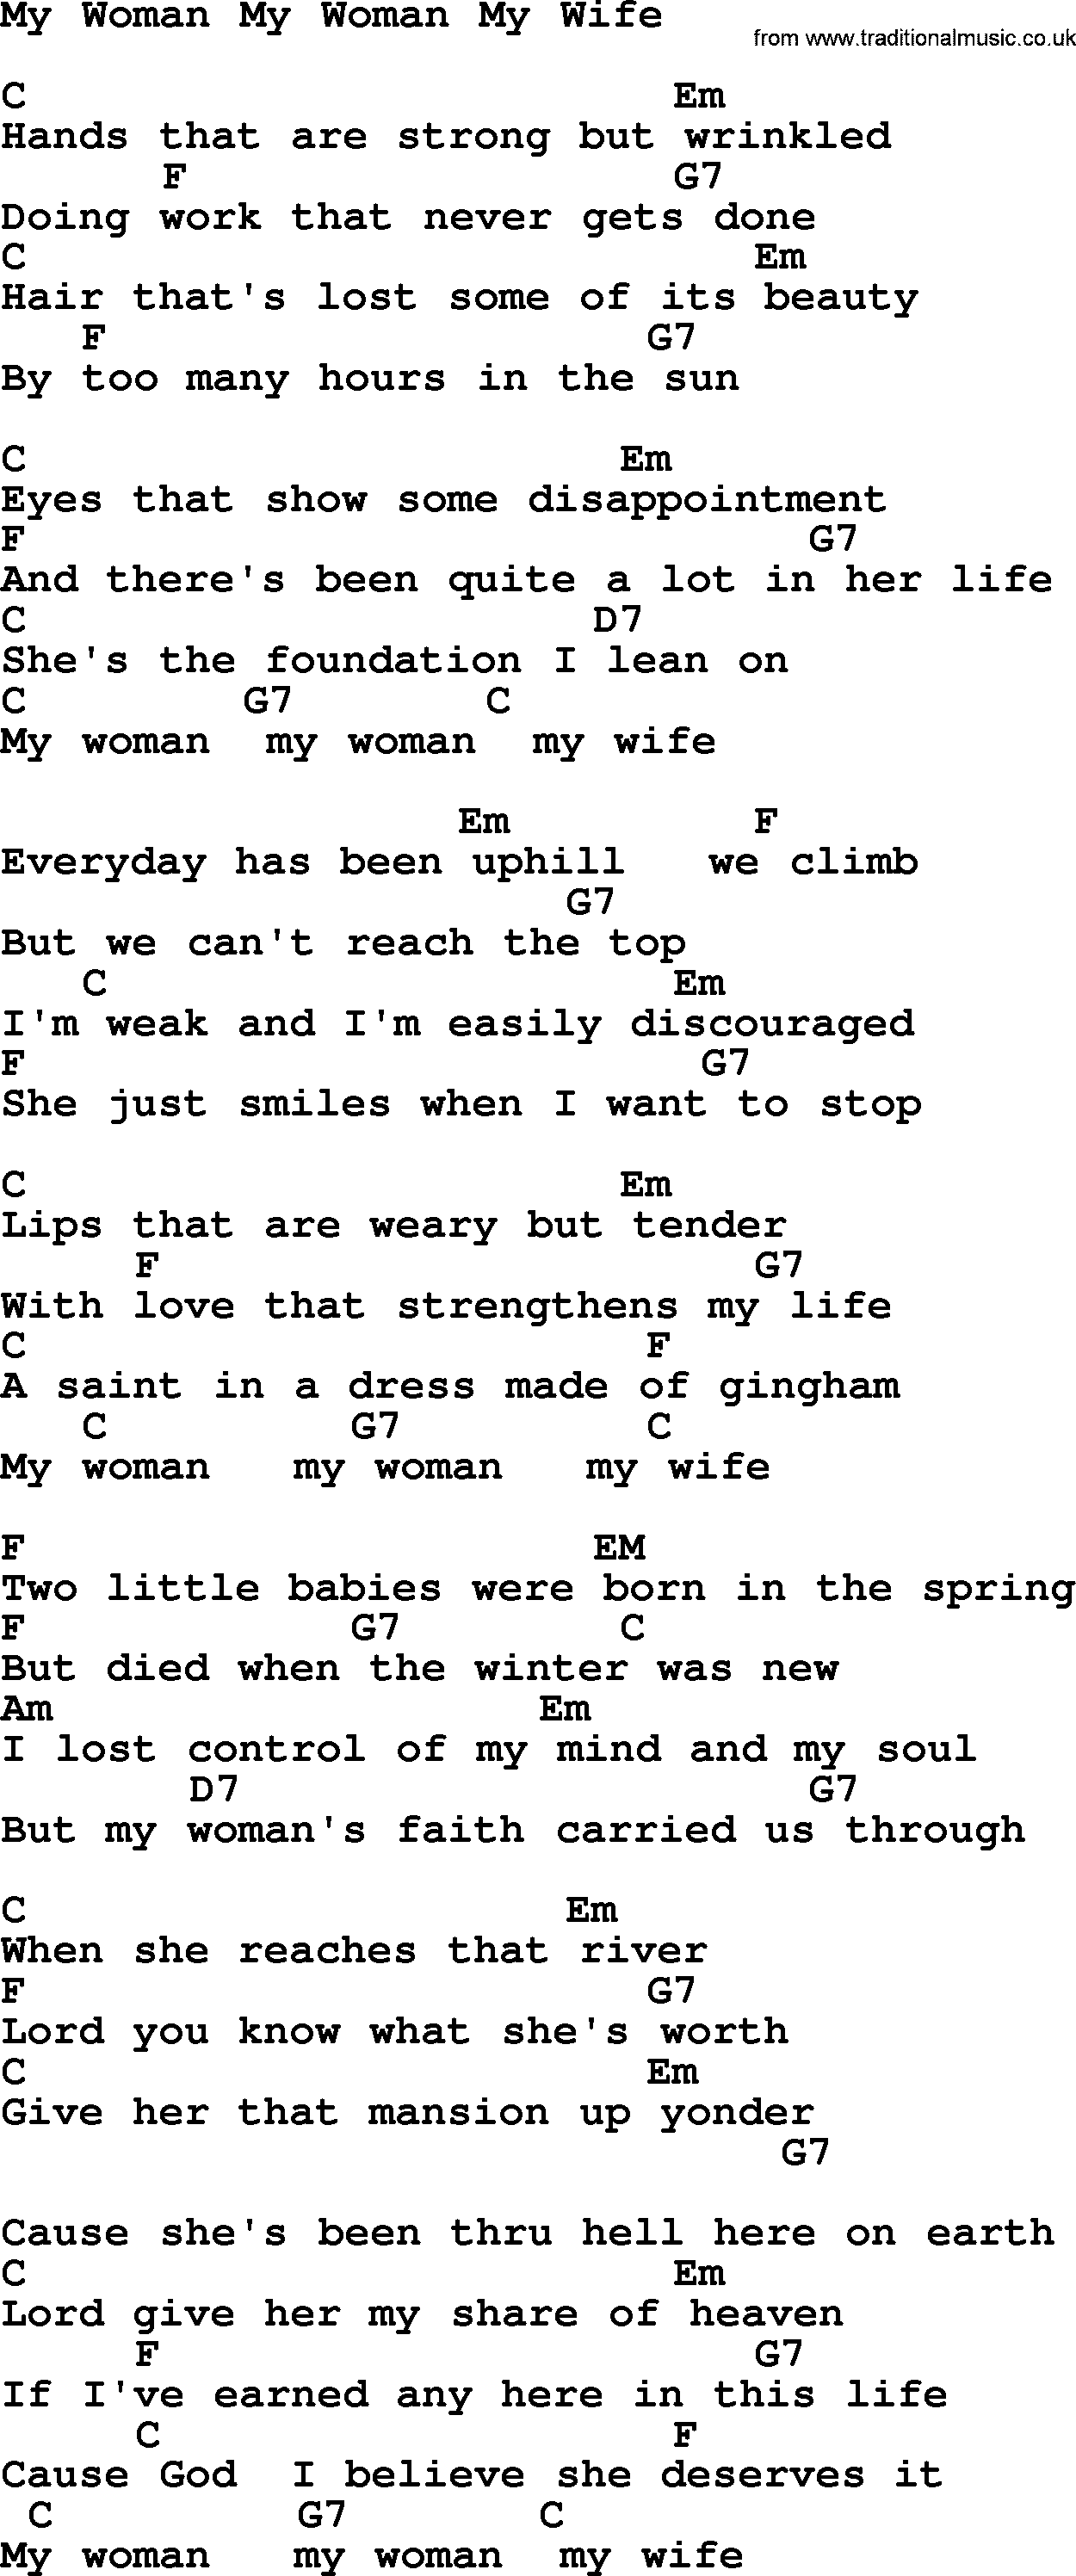 Marty Robbins Song My Woman My Woman My Wife Lyrics And Chords